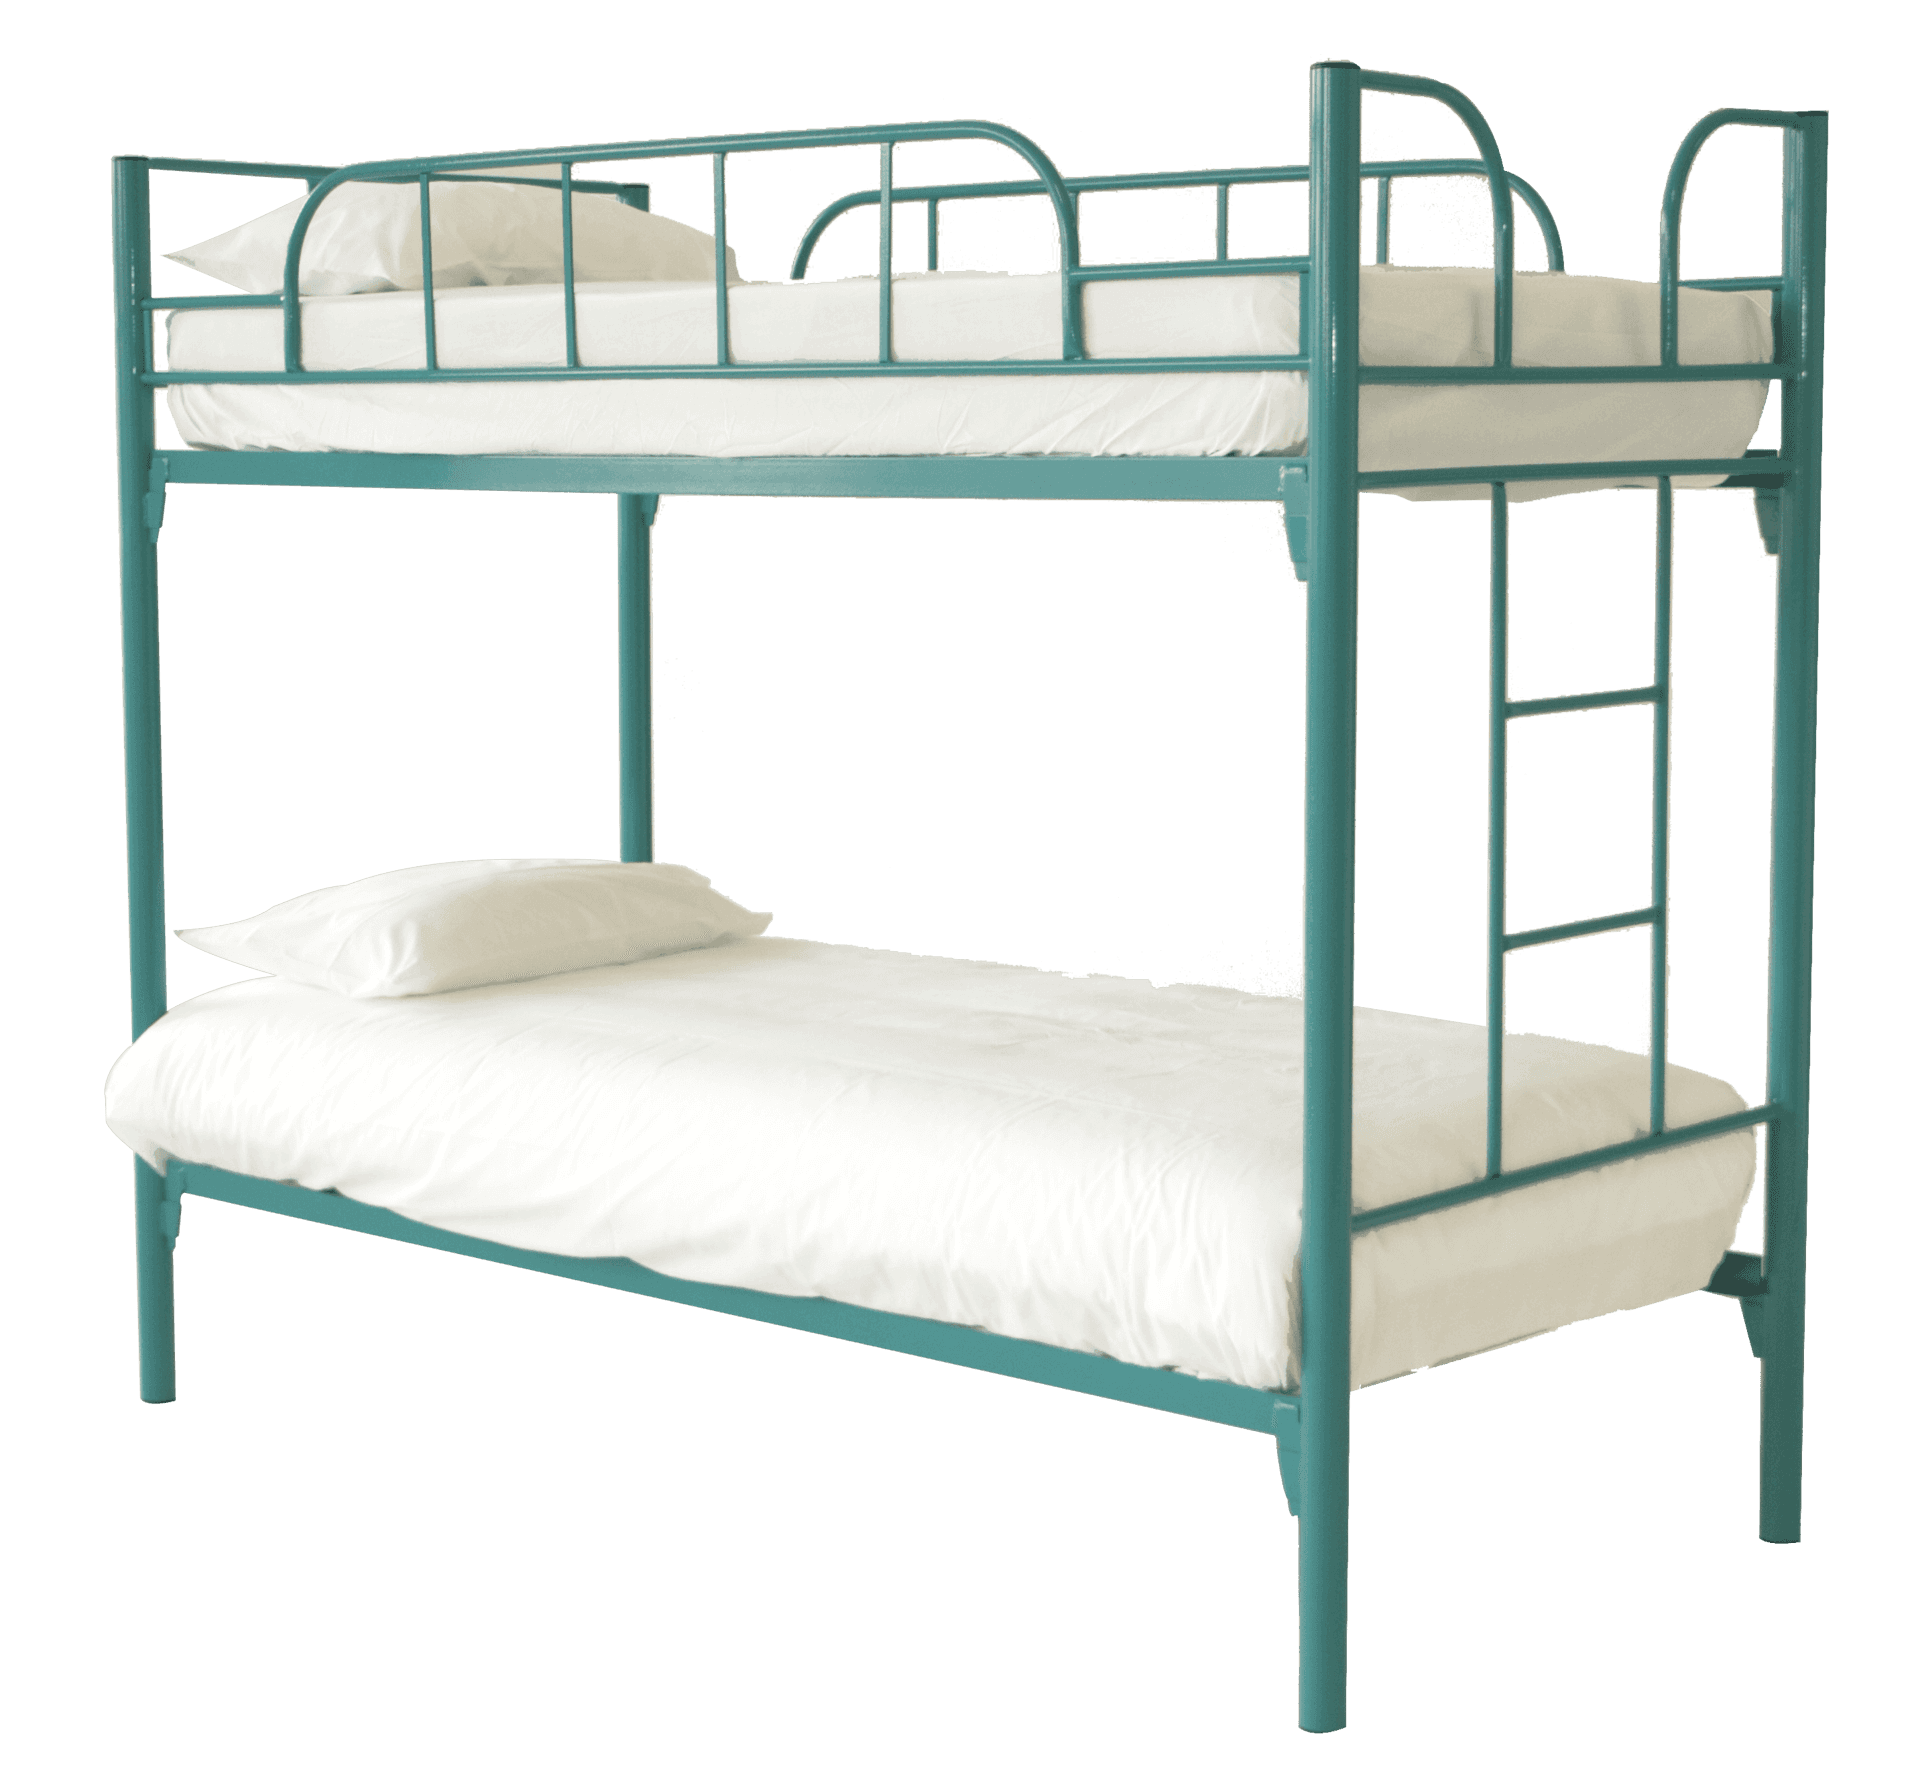 Storage Beds Australia Stylish Bunk Beds In Adelaide Dreamland